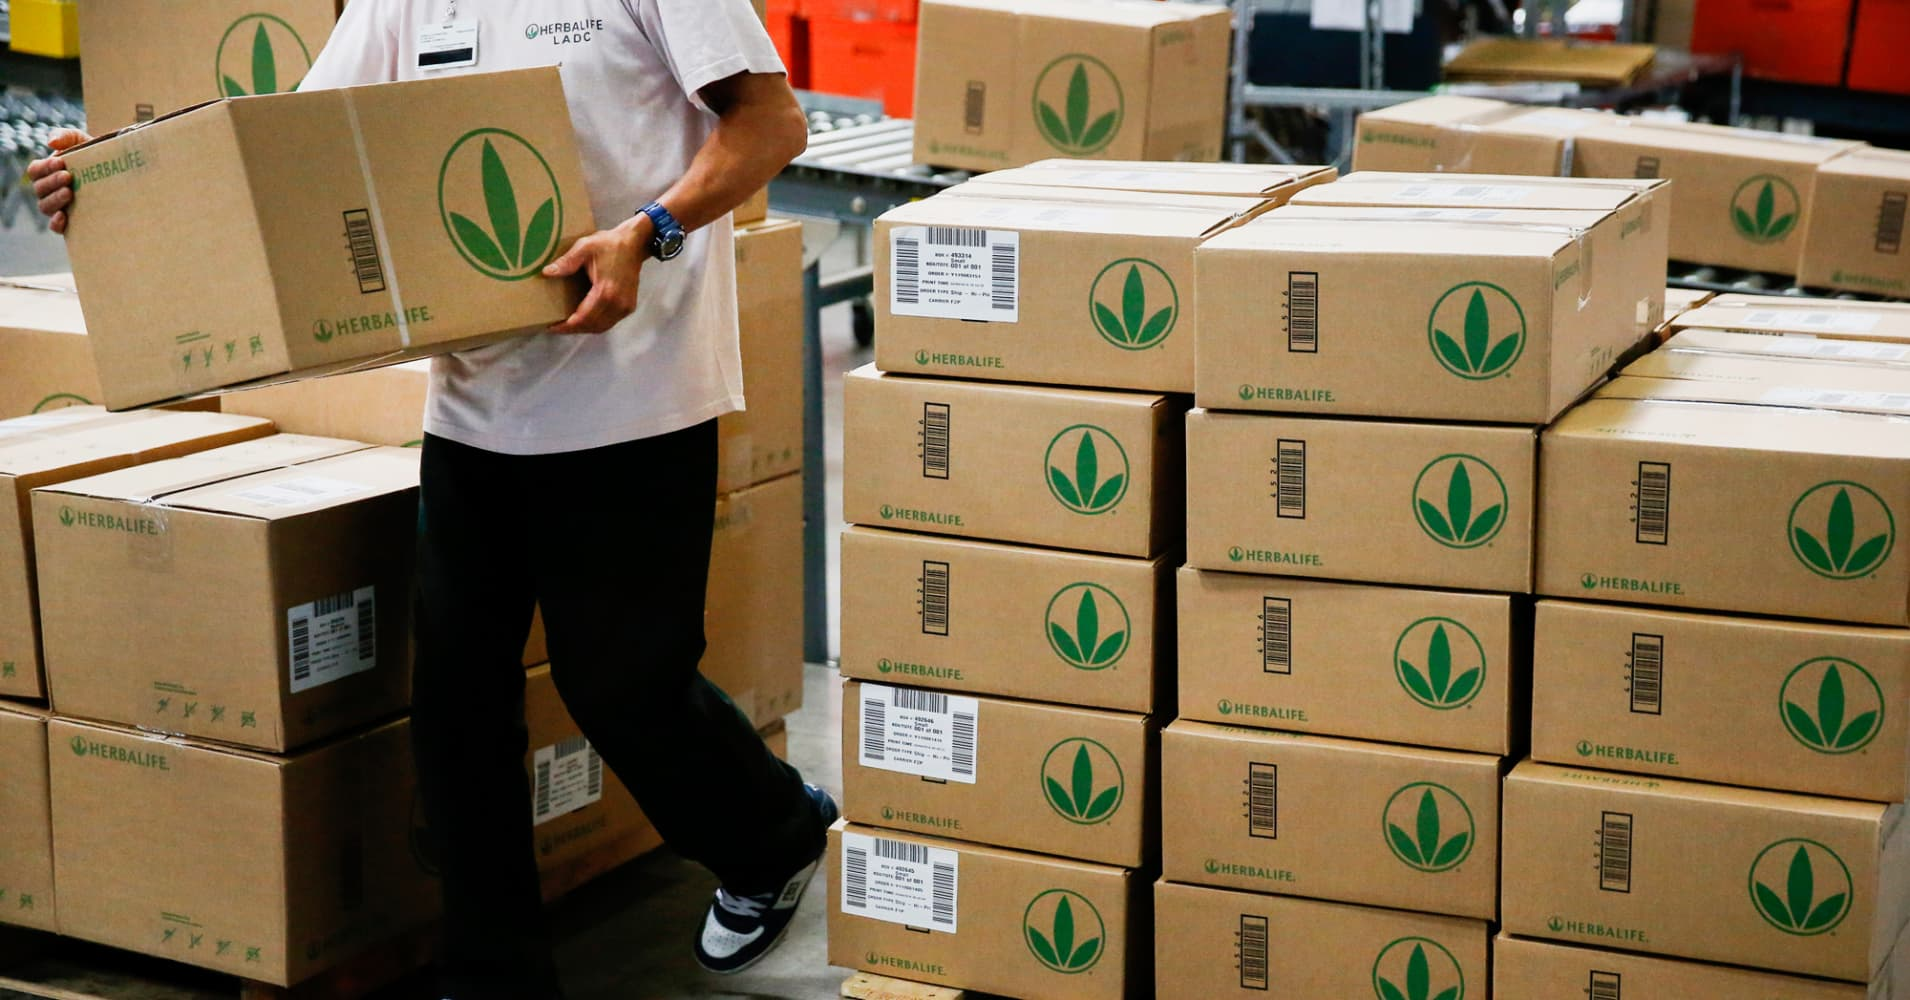 FTC determines Herbalife is not a pyramid scheme